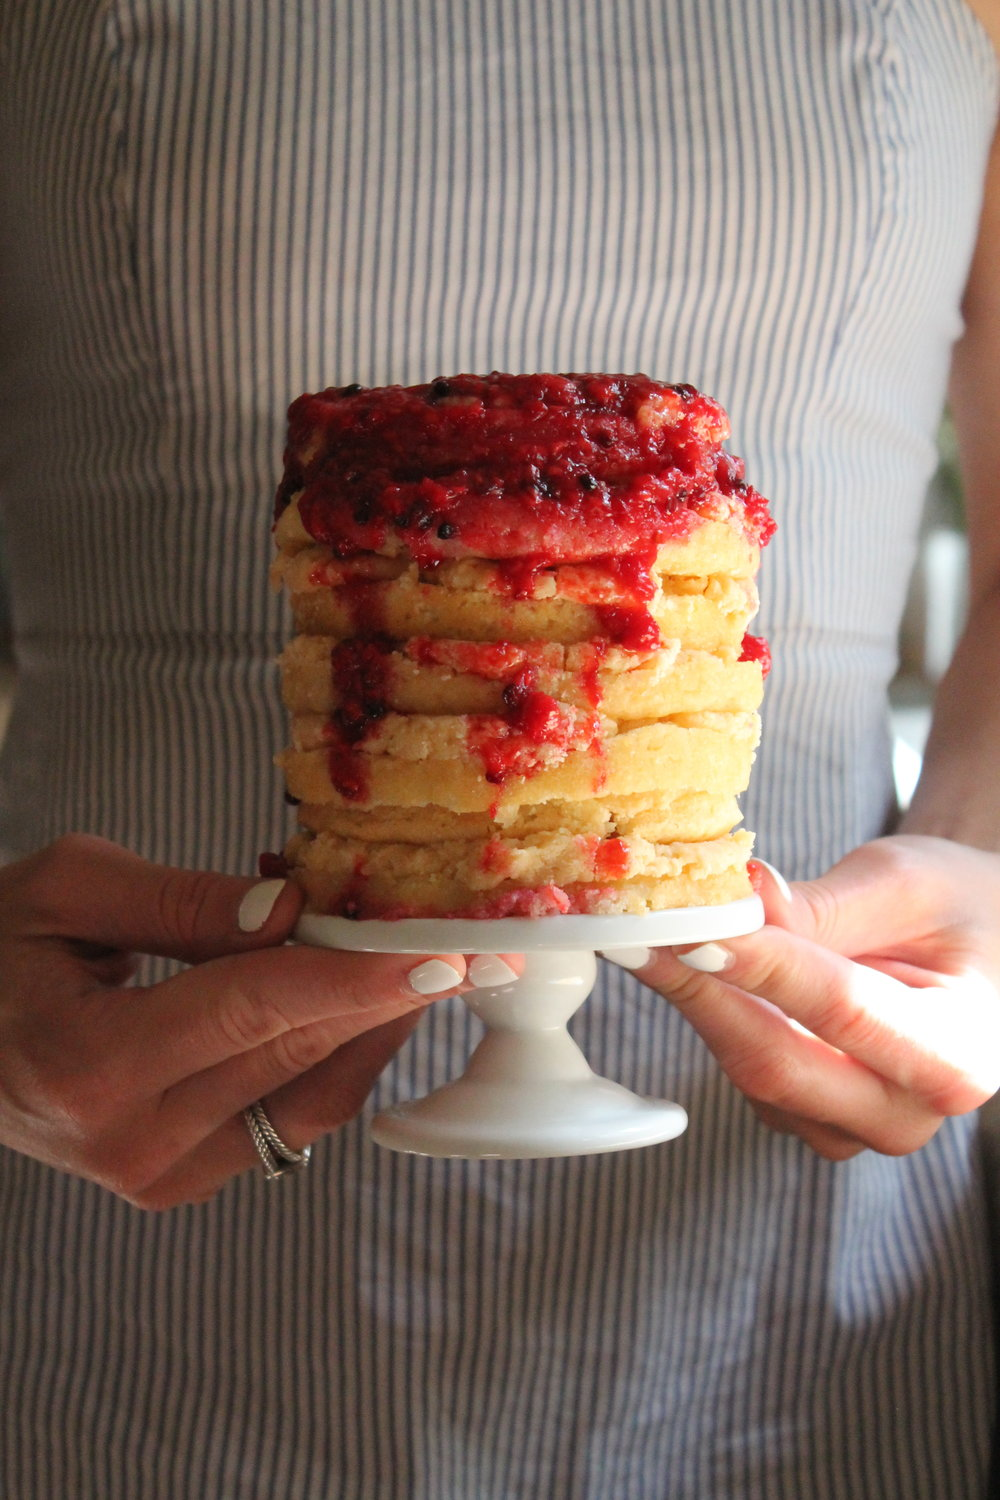 Miss Gertrude's Caramel Icing with Berry compote